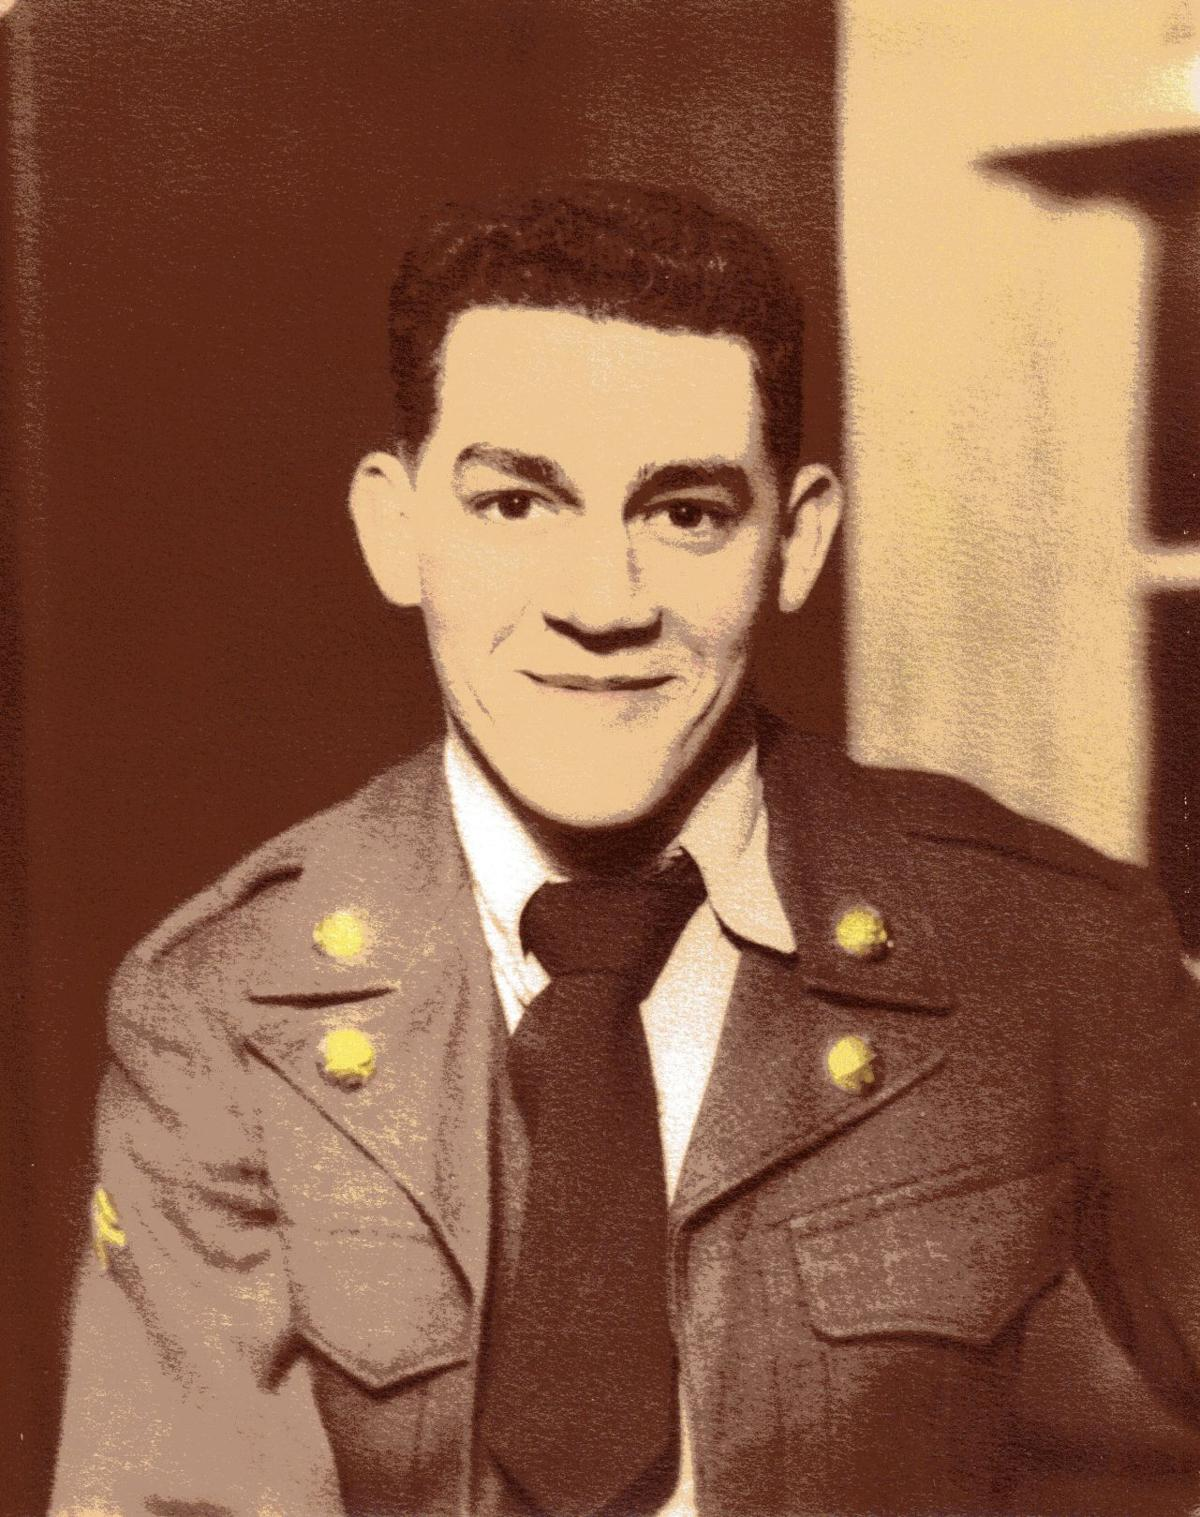 Remains of missing NY soldier identified: Seminole man's DNA helps lay to rest his uncle, 70 years later - 2